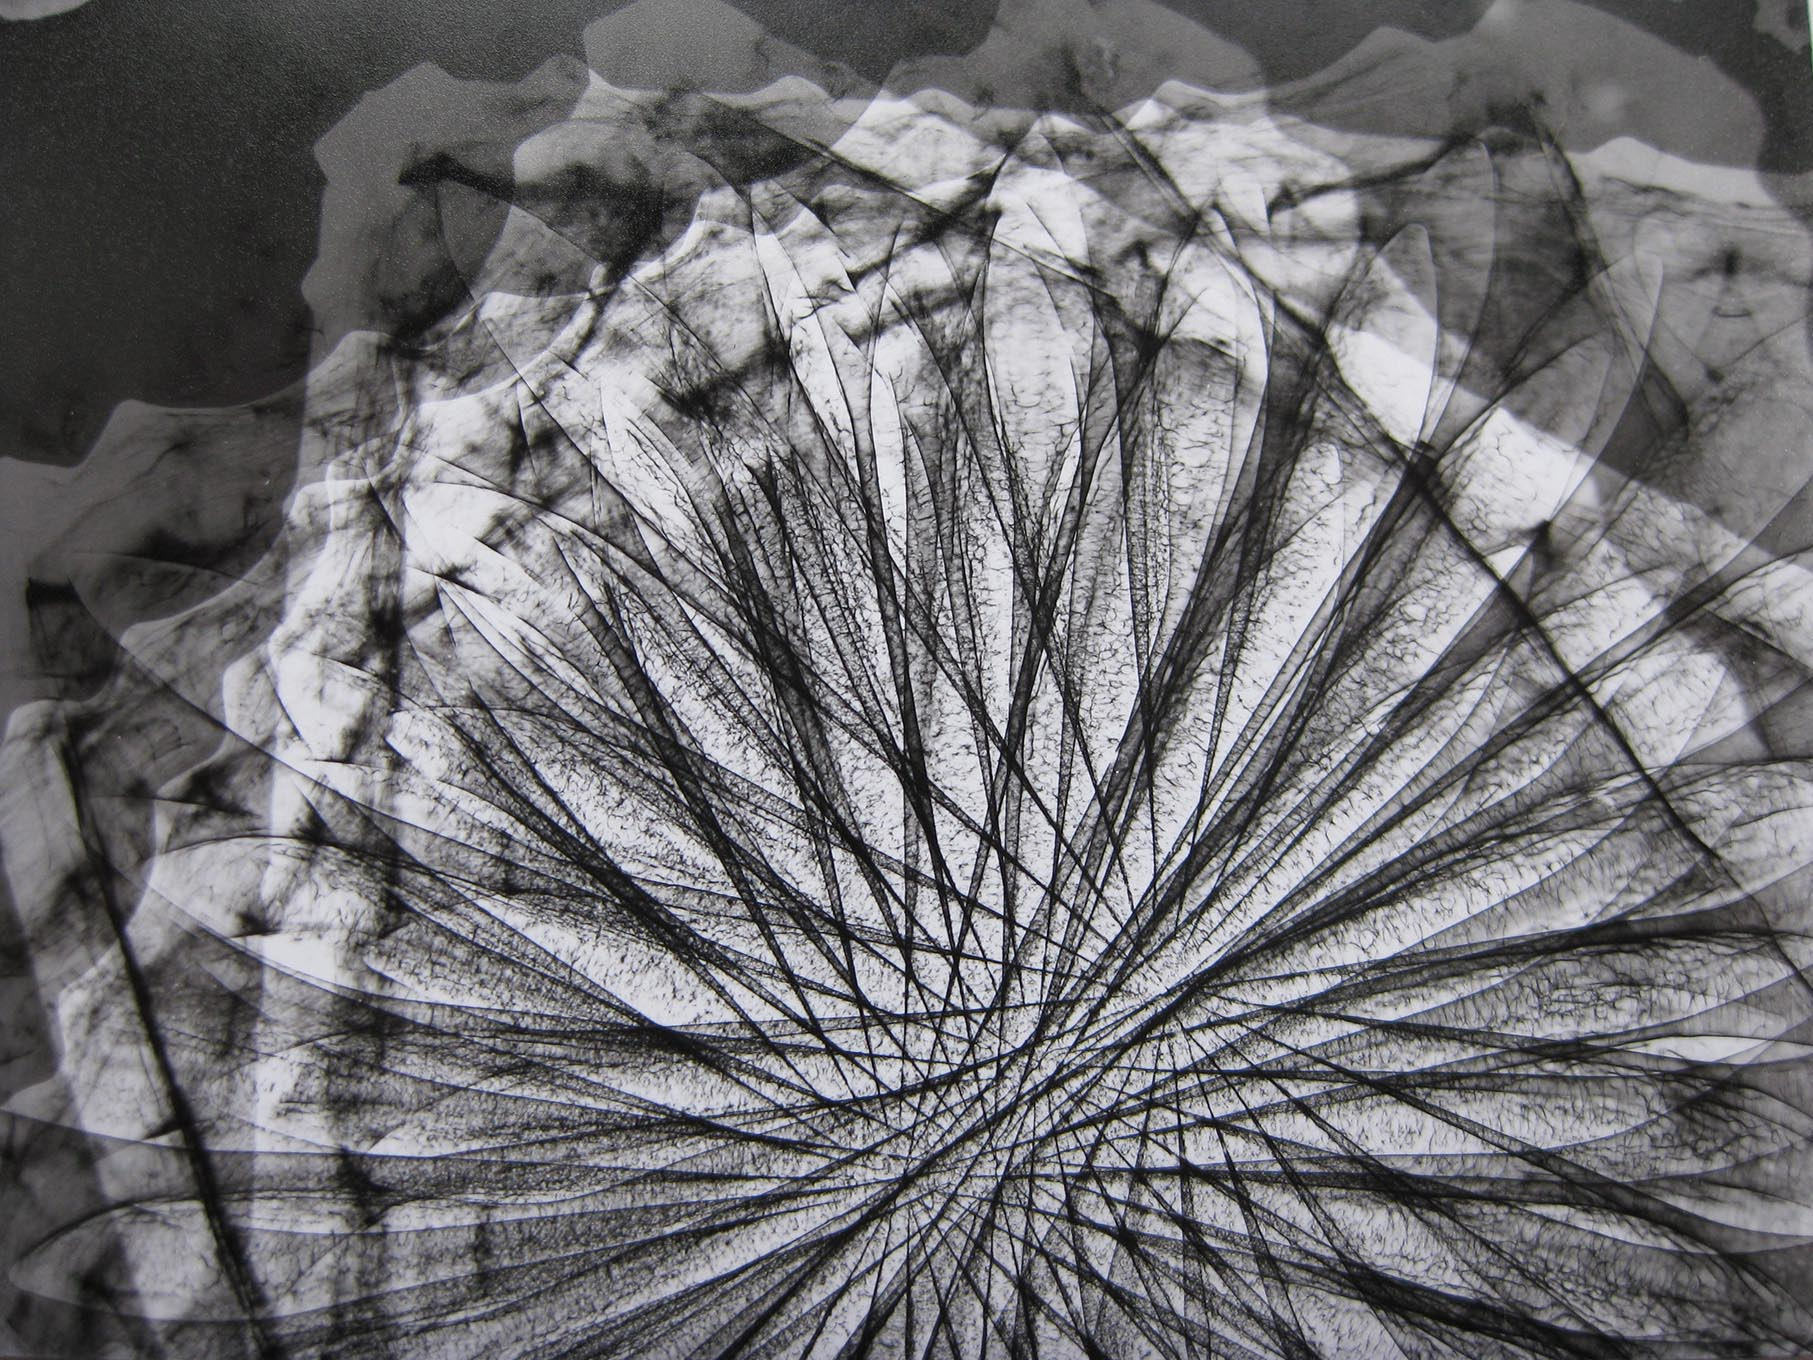 Limited Edition Print of the  X-Ray Film Series Photograms , by Rita Parniczky